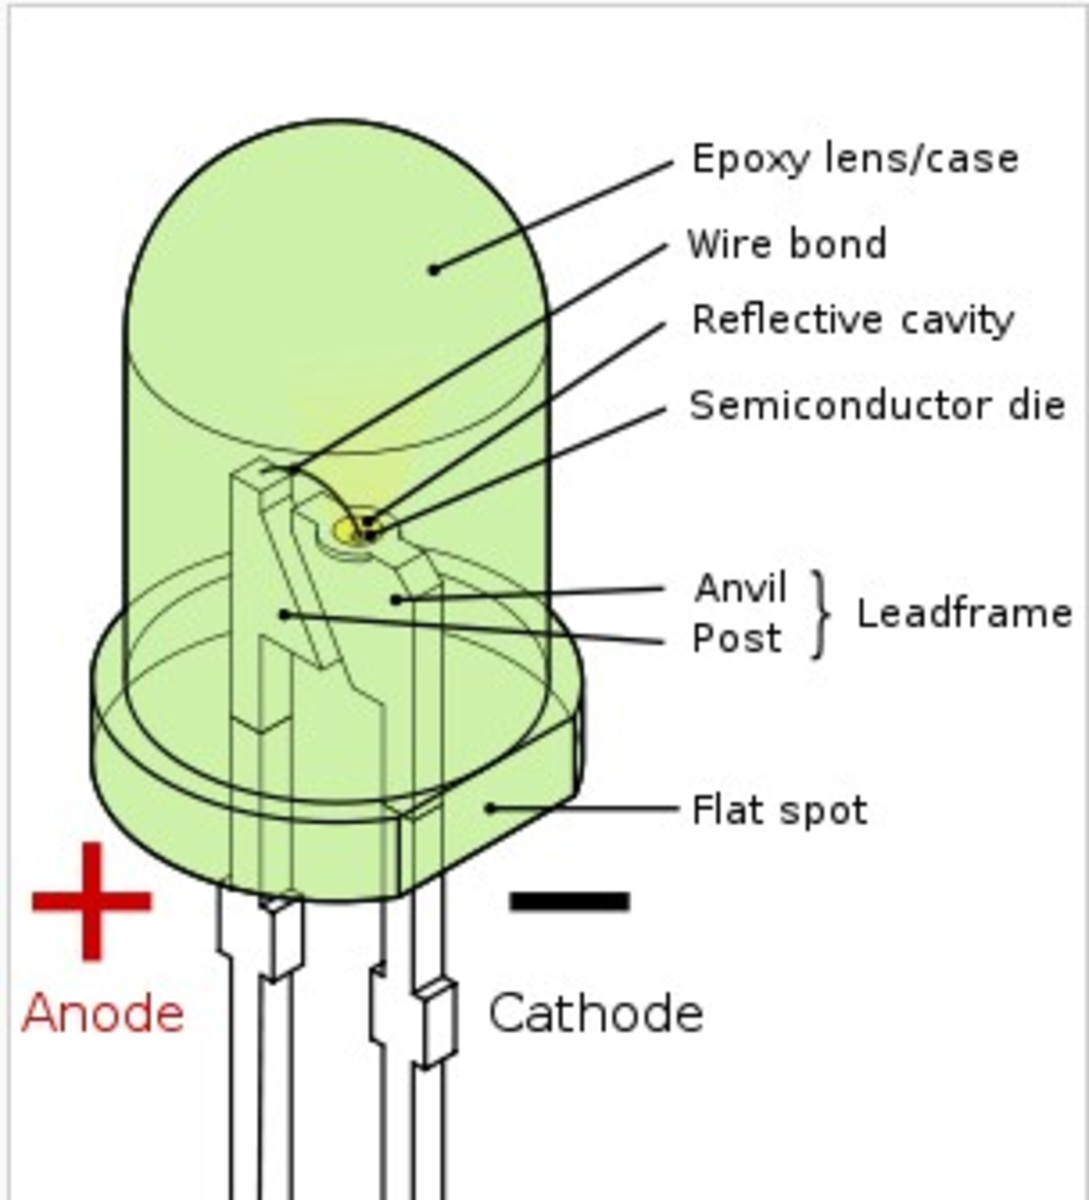 Actual Parts of an LED